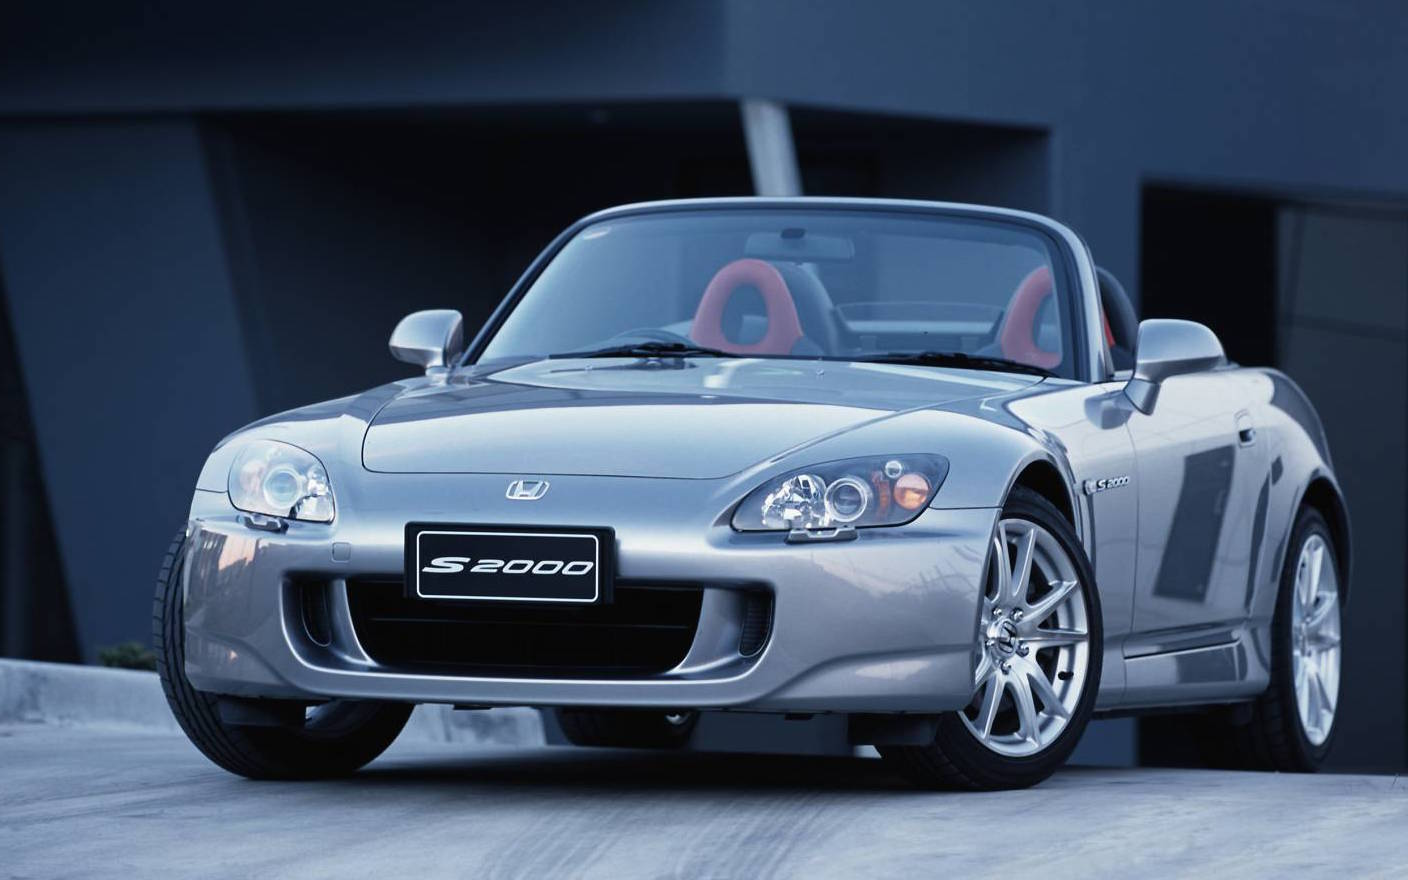 Honda planning new S2000 sports car to rival Porsche Cayman